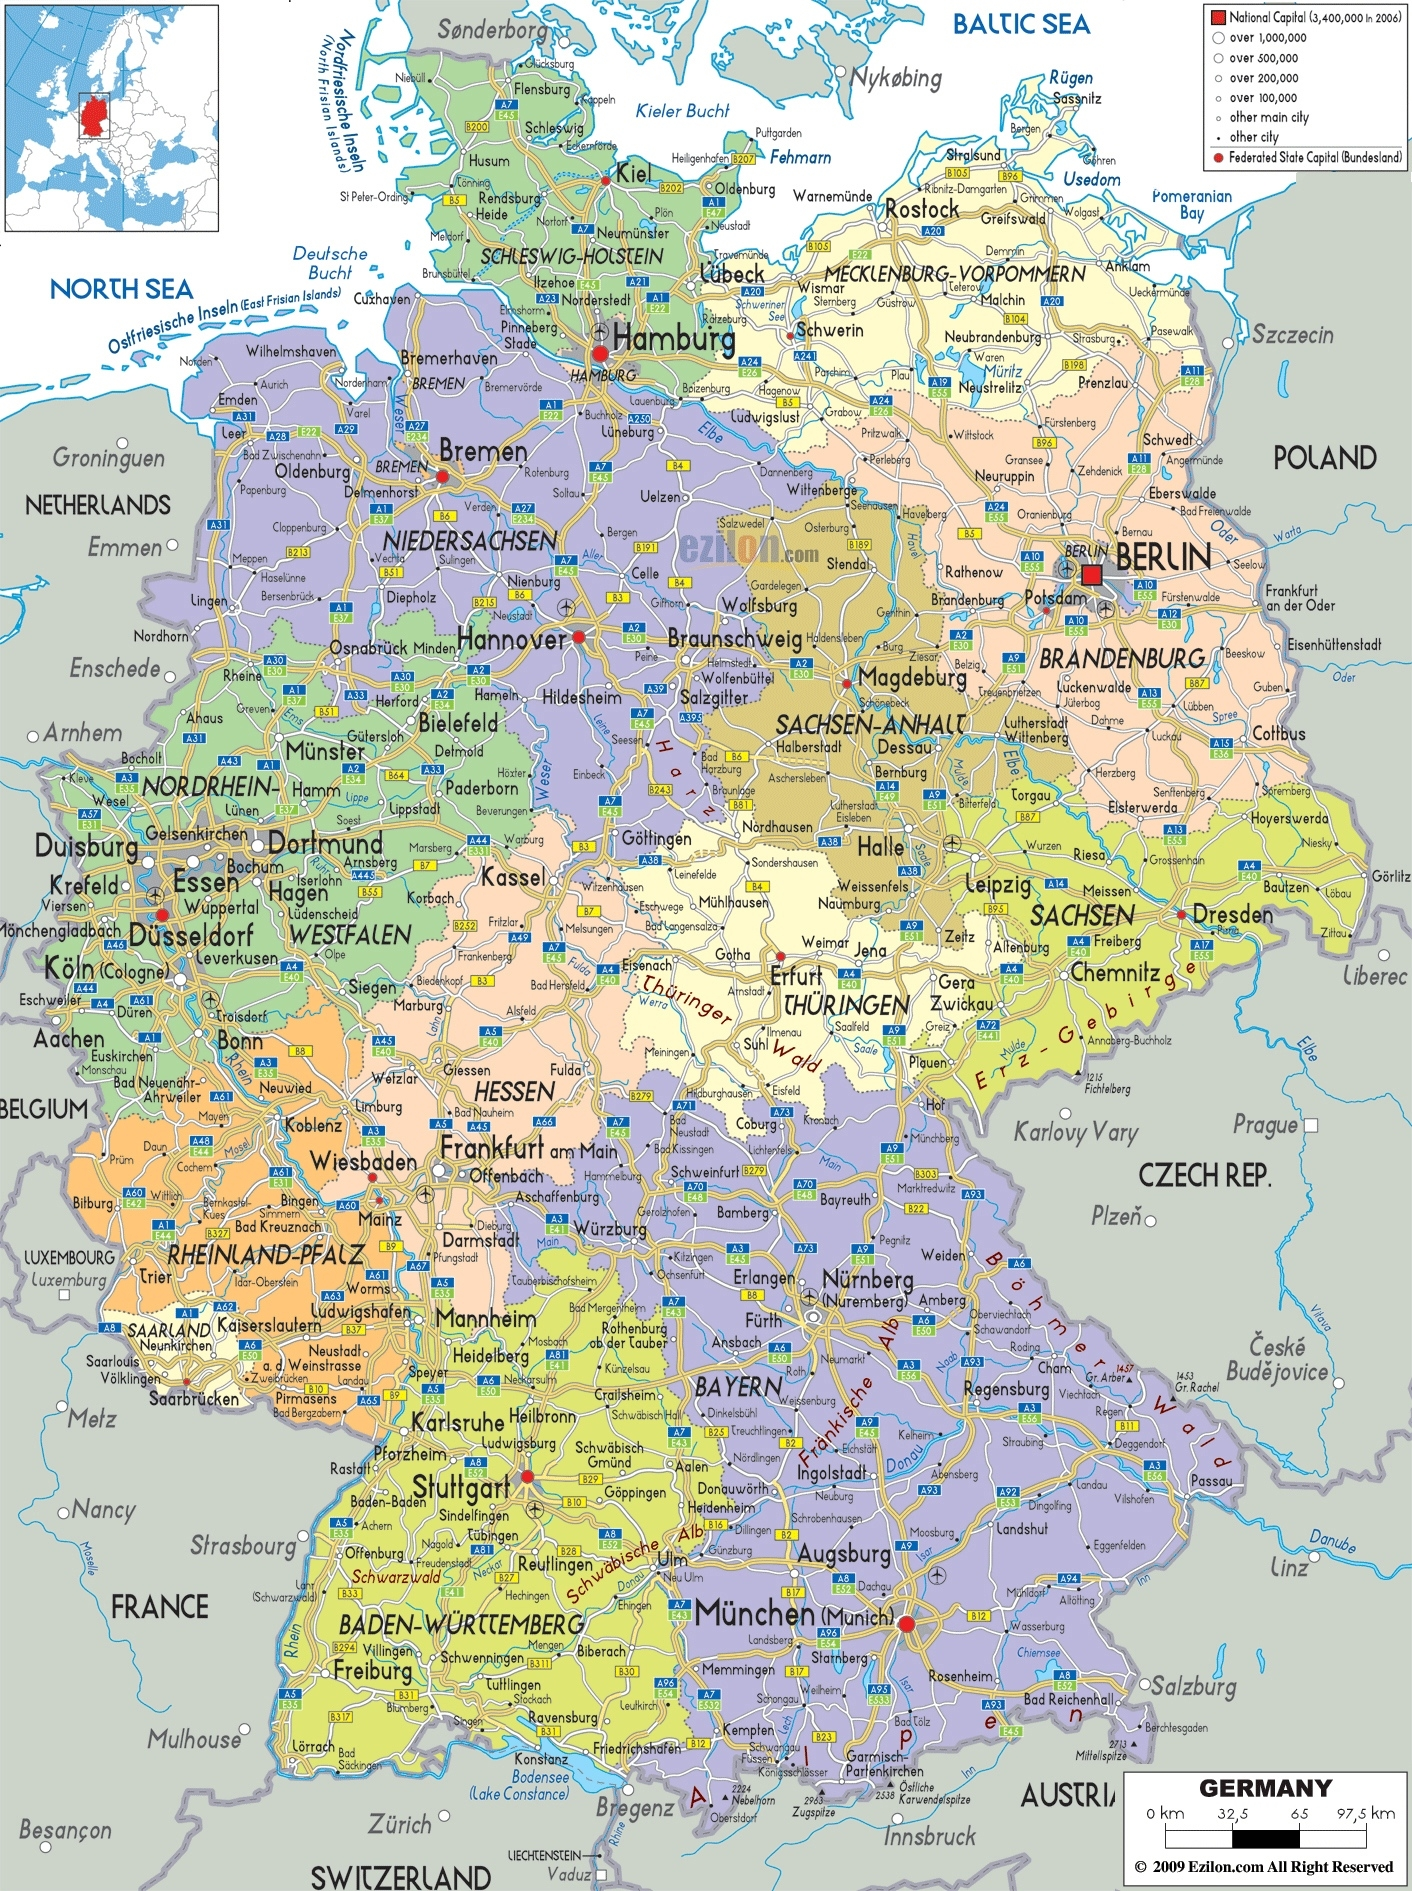 Large Detailed Political And Administrative Map Of Germany With All throughout Map Of Germany Airports And Cities